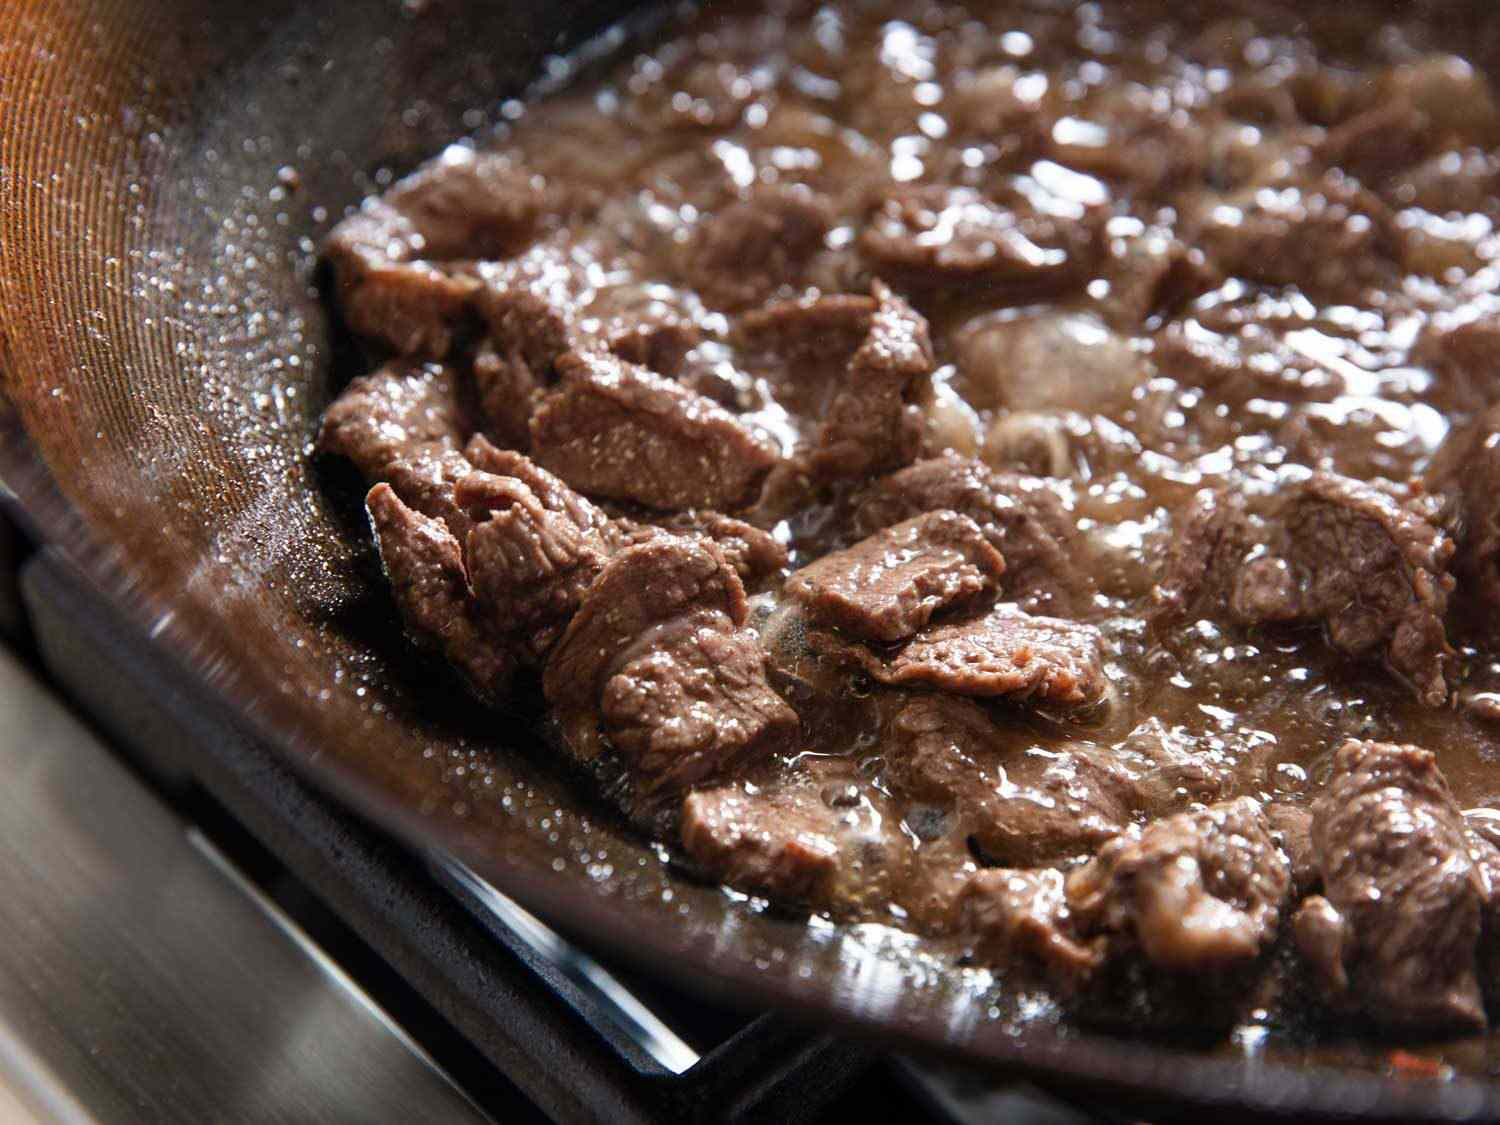 Flank steak frying in moderately hot oil in a wok to prepare for dry-frying